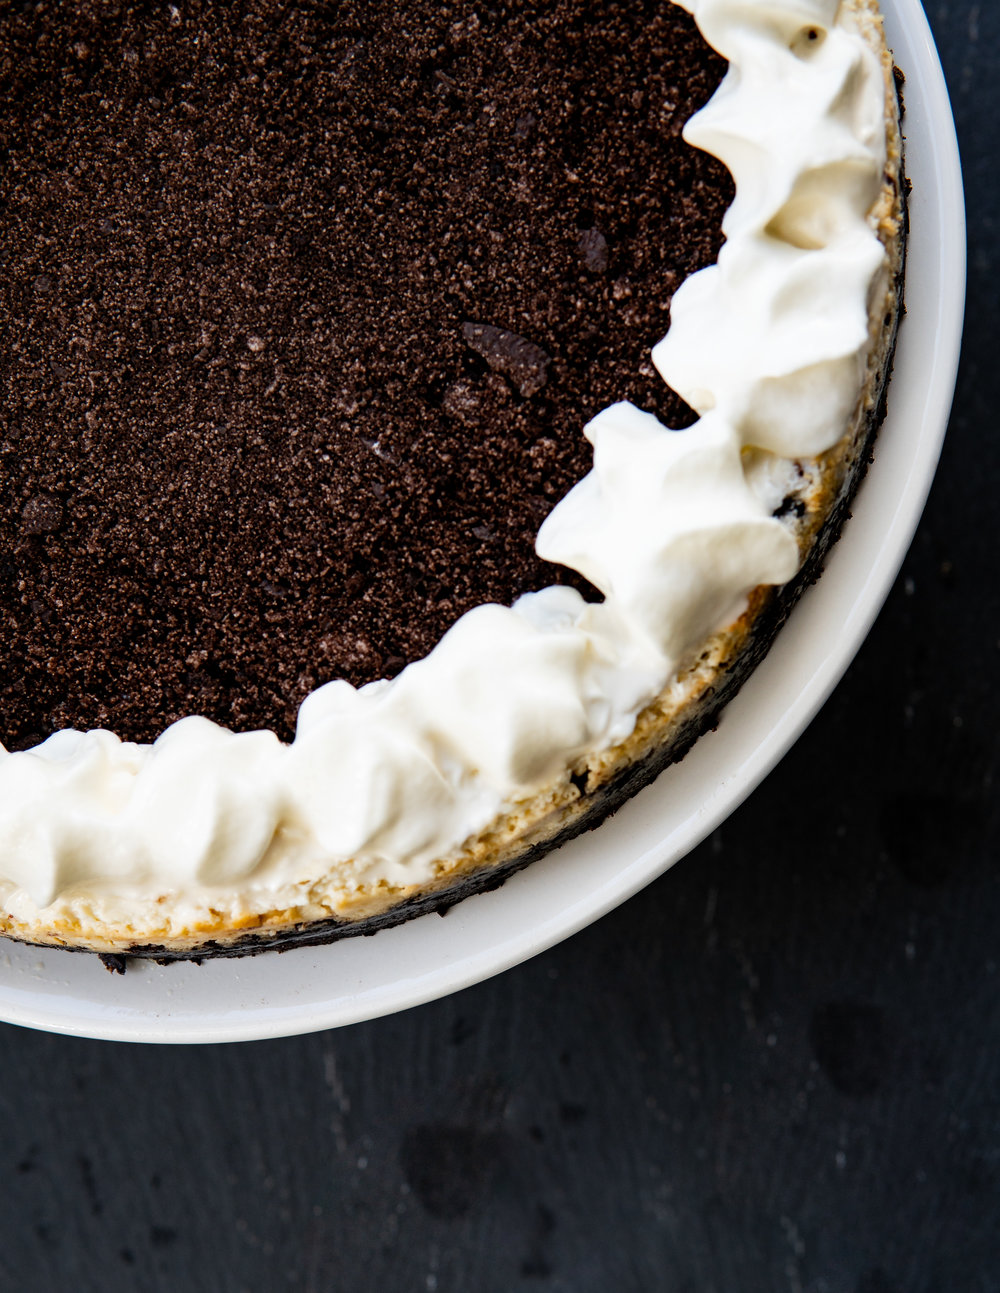 Oreo Goat Cheese Cheesecake = DROOLING